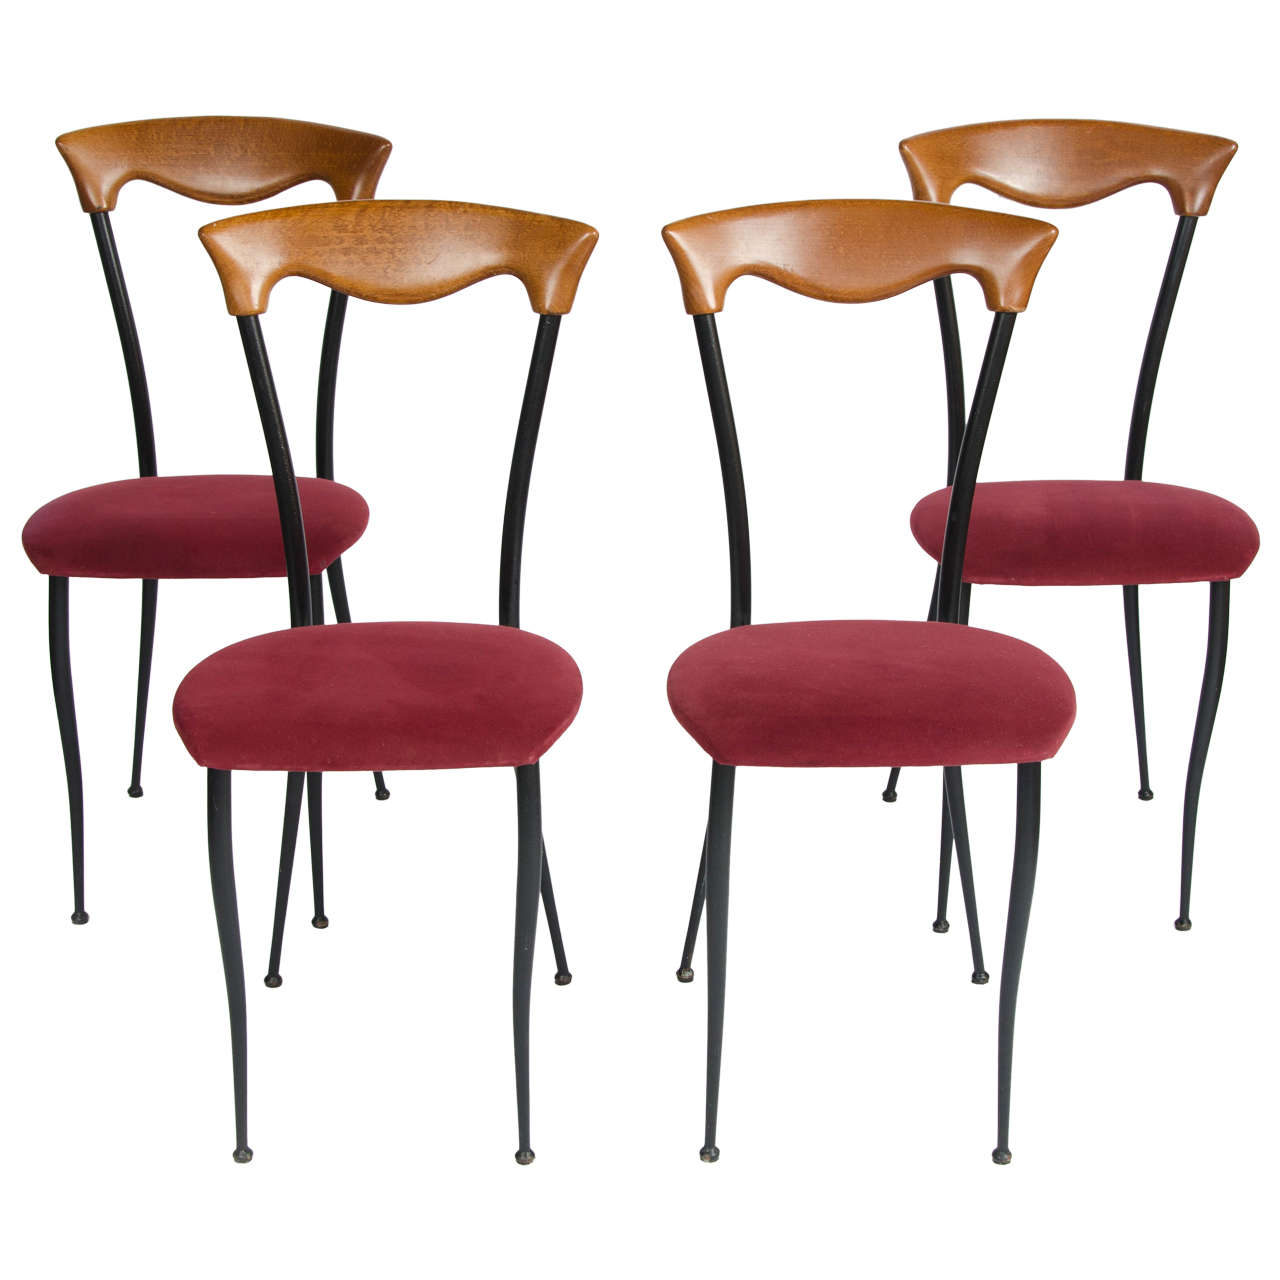 Four 1970s Italian Style Dining Chairs At 1stdibs